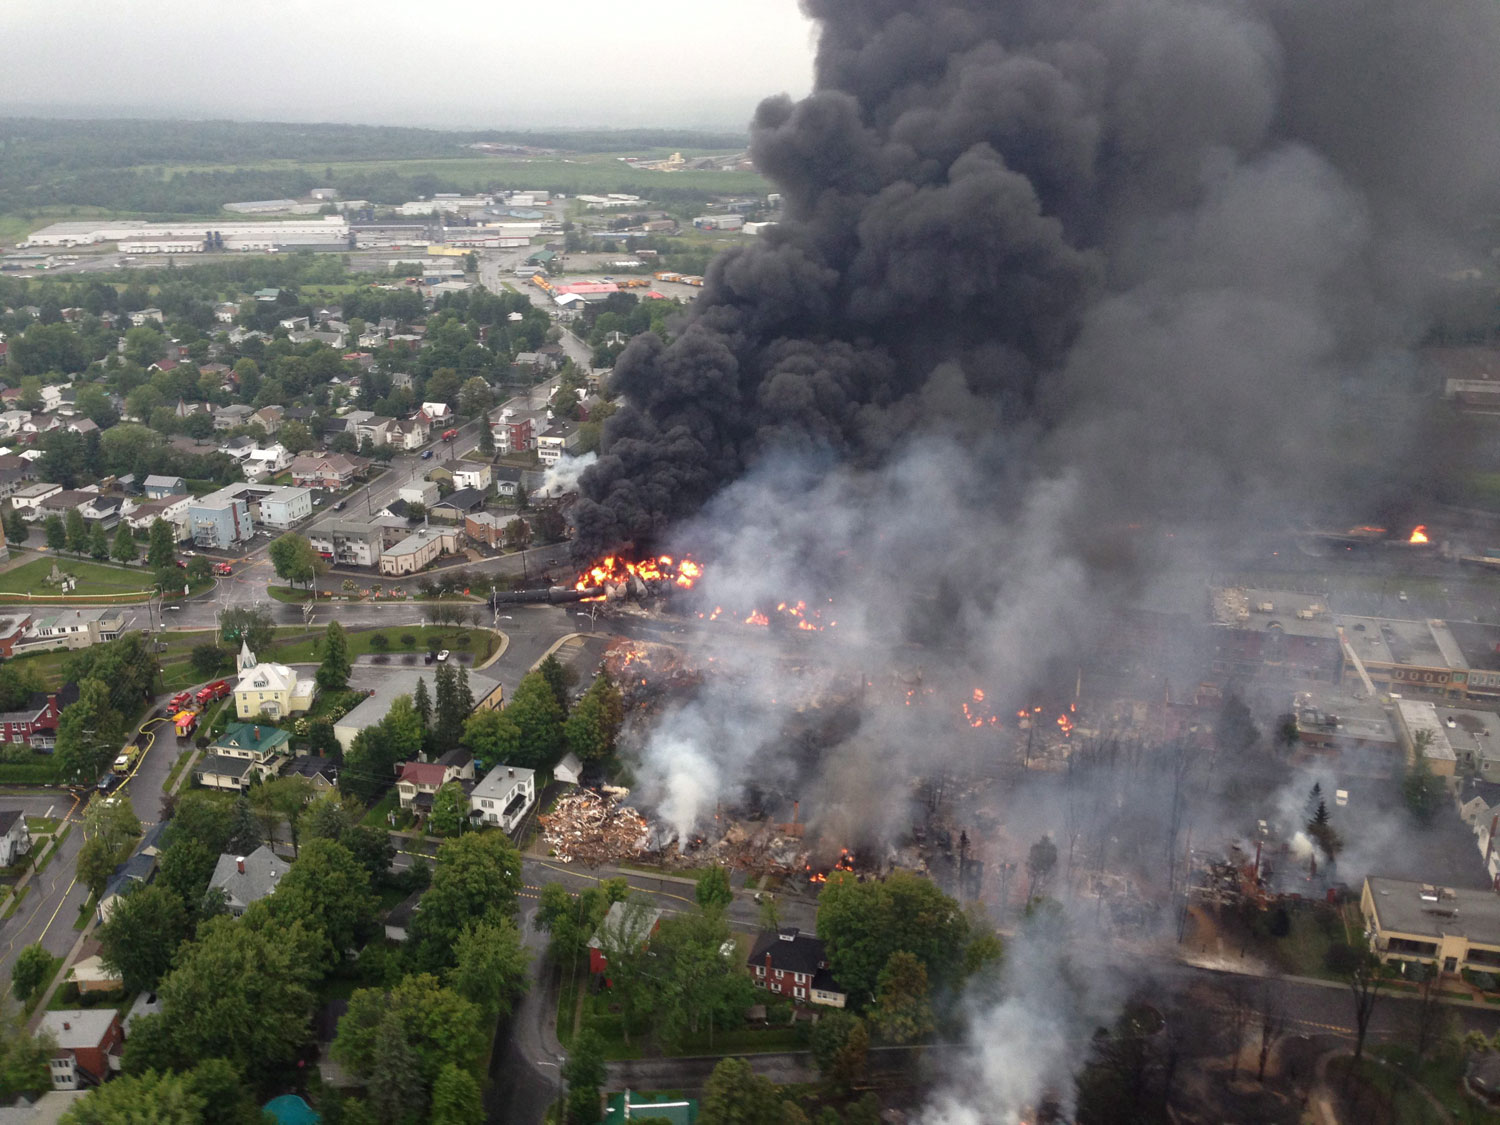 However, it is actually the town of Lac-Megantic, Quebec following a train derailment that sparked several explosions on July 6, 2013.